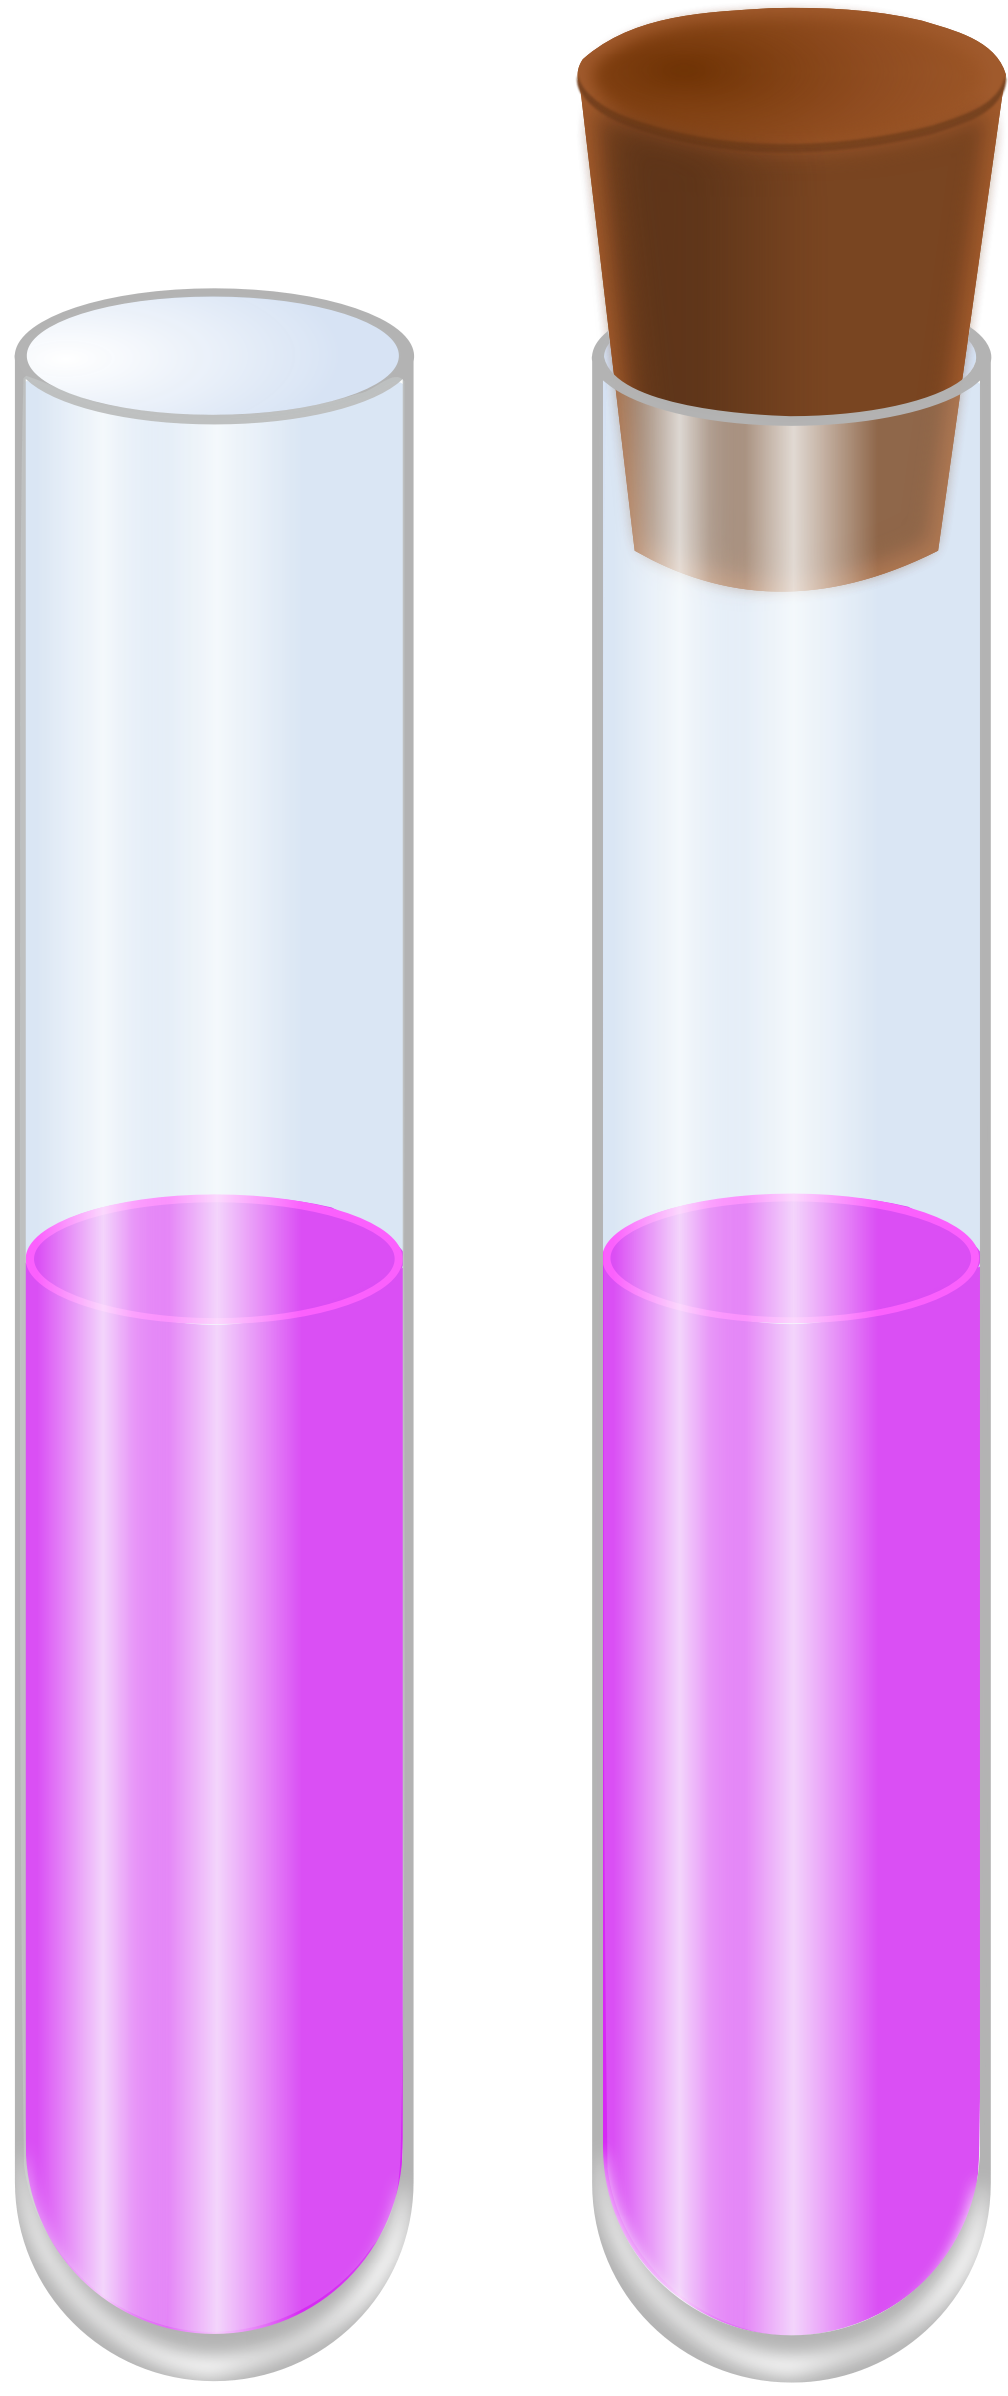 Big image png for Simple glass tubes